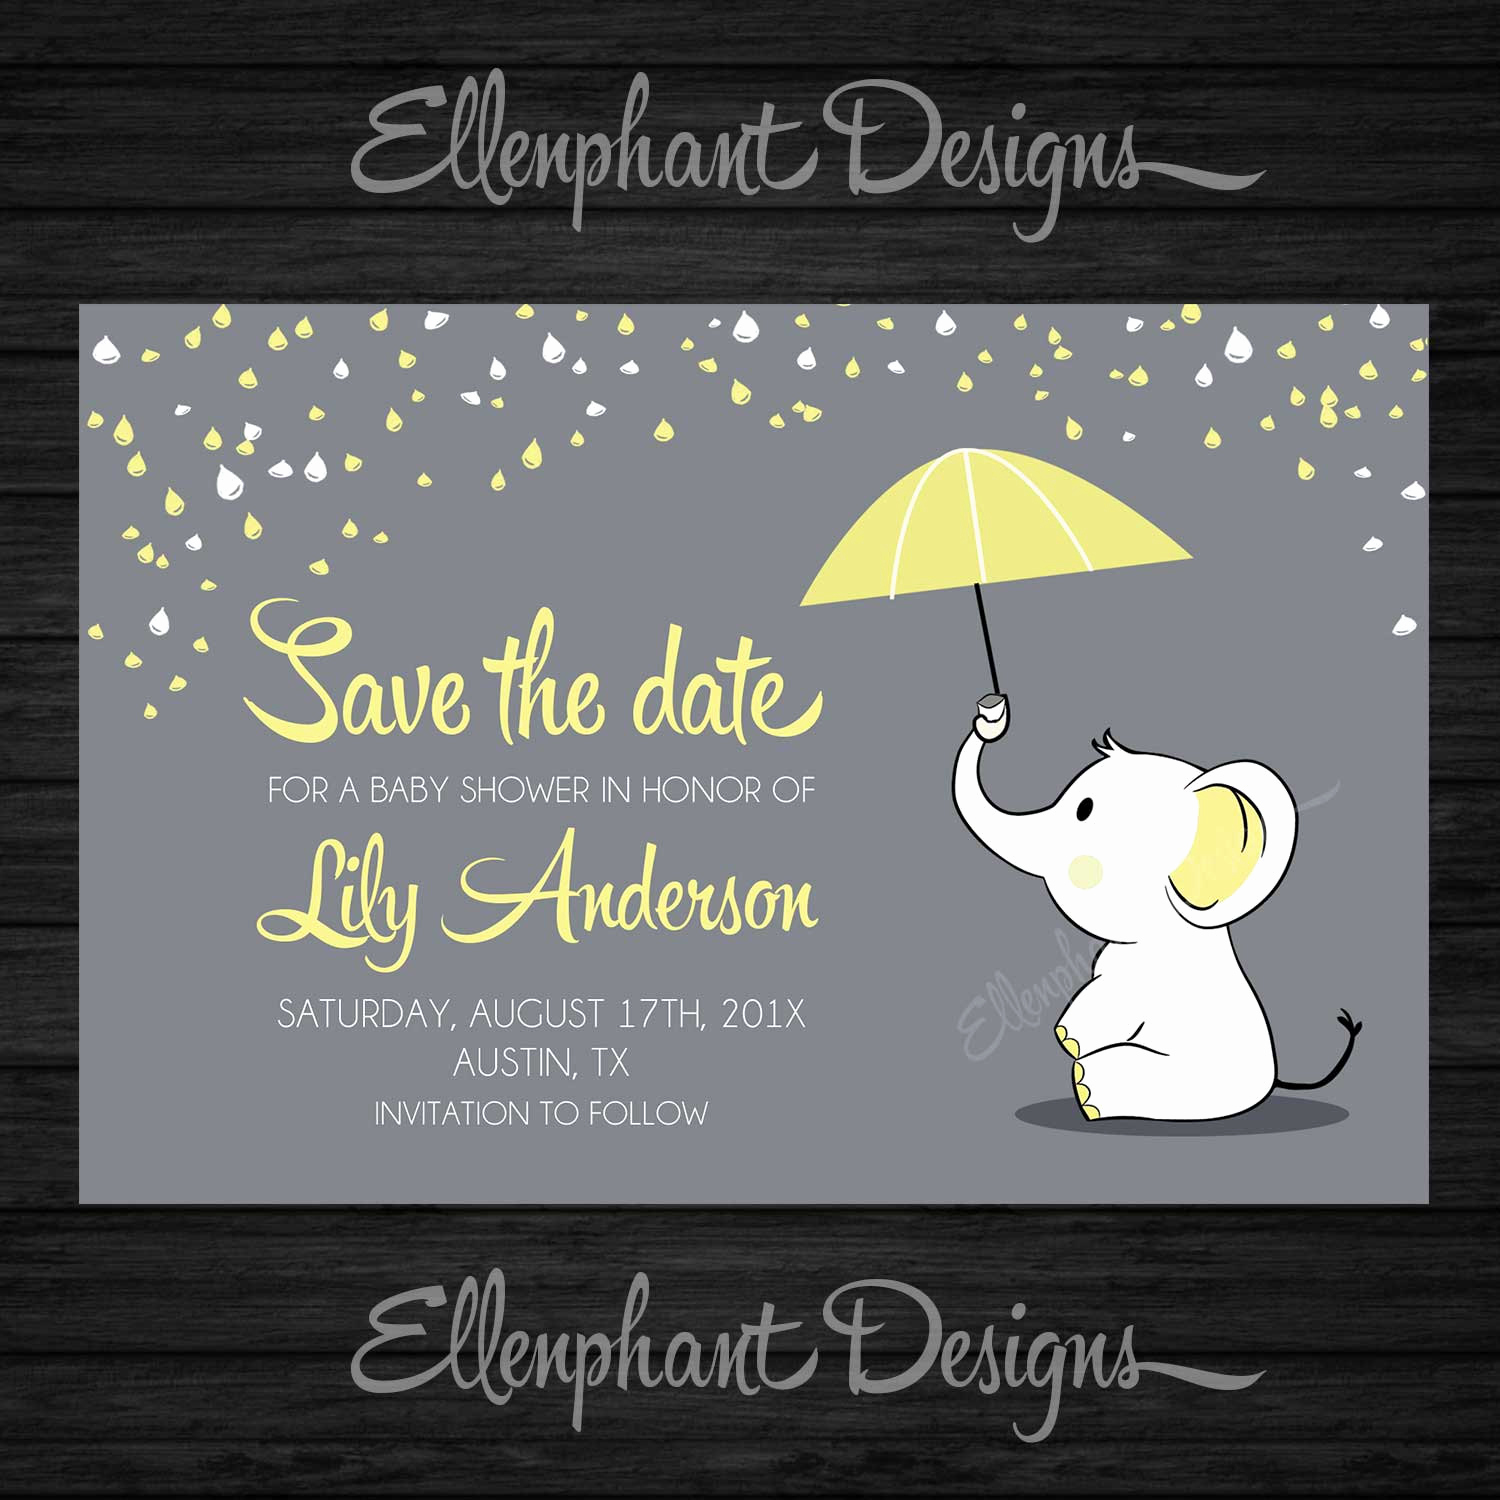 Baby Shower Save the Dates Unique Save the Date Yellow Elephant Baby Shower Umbrella Rain